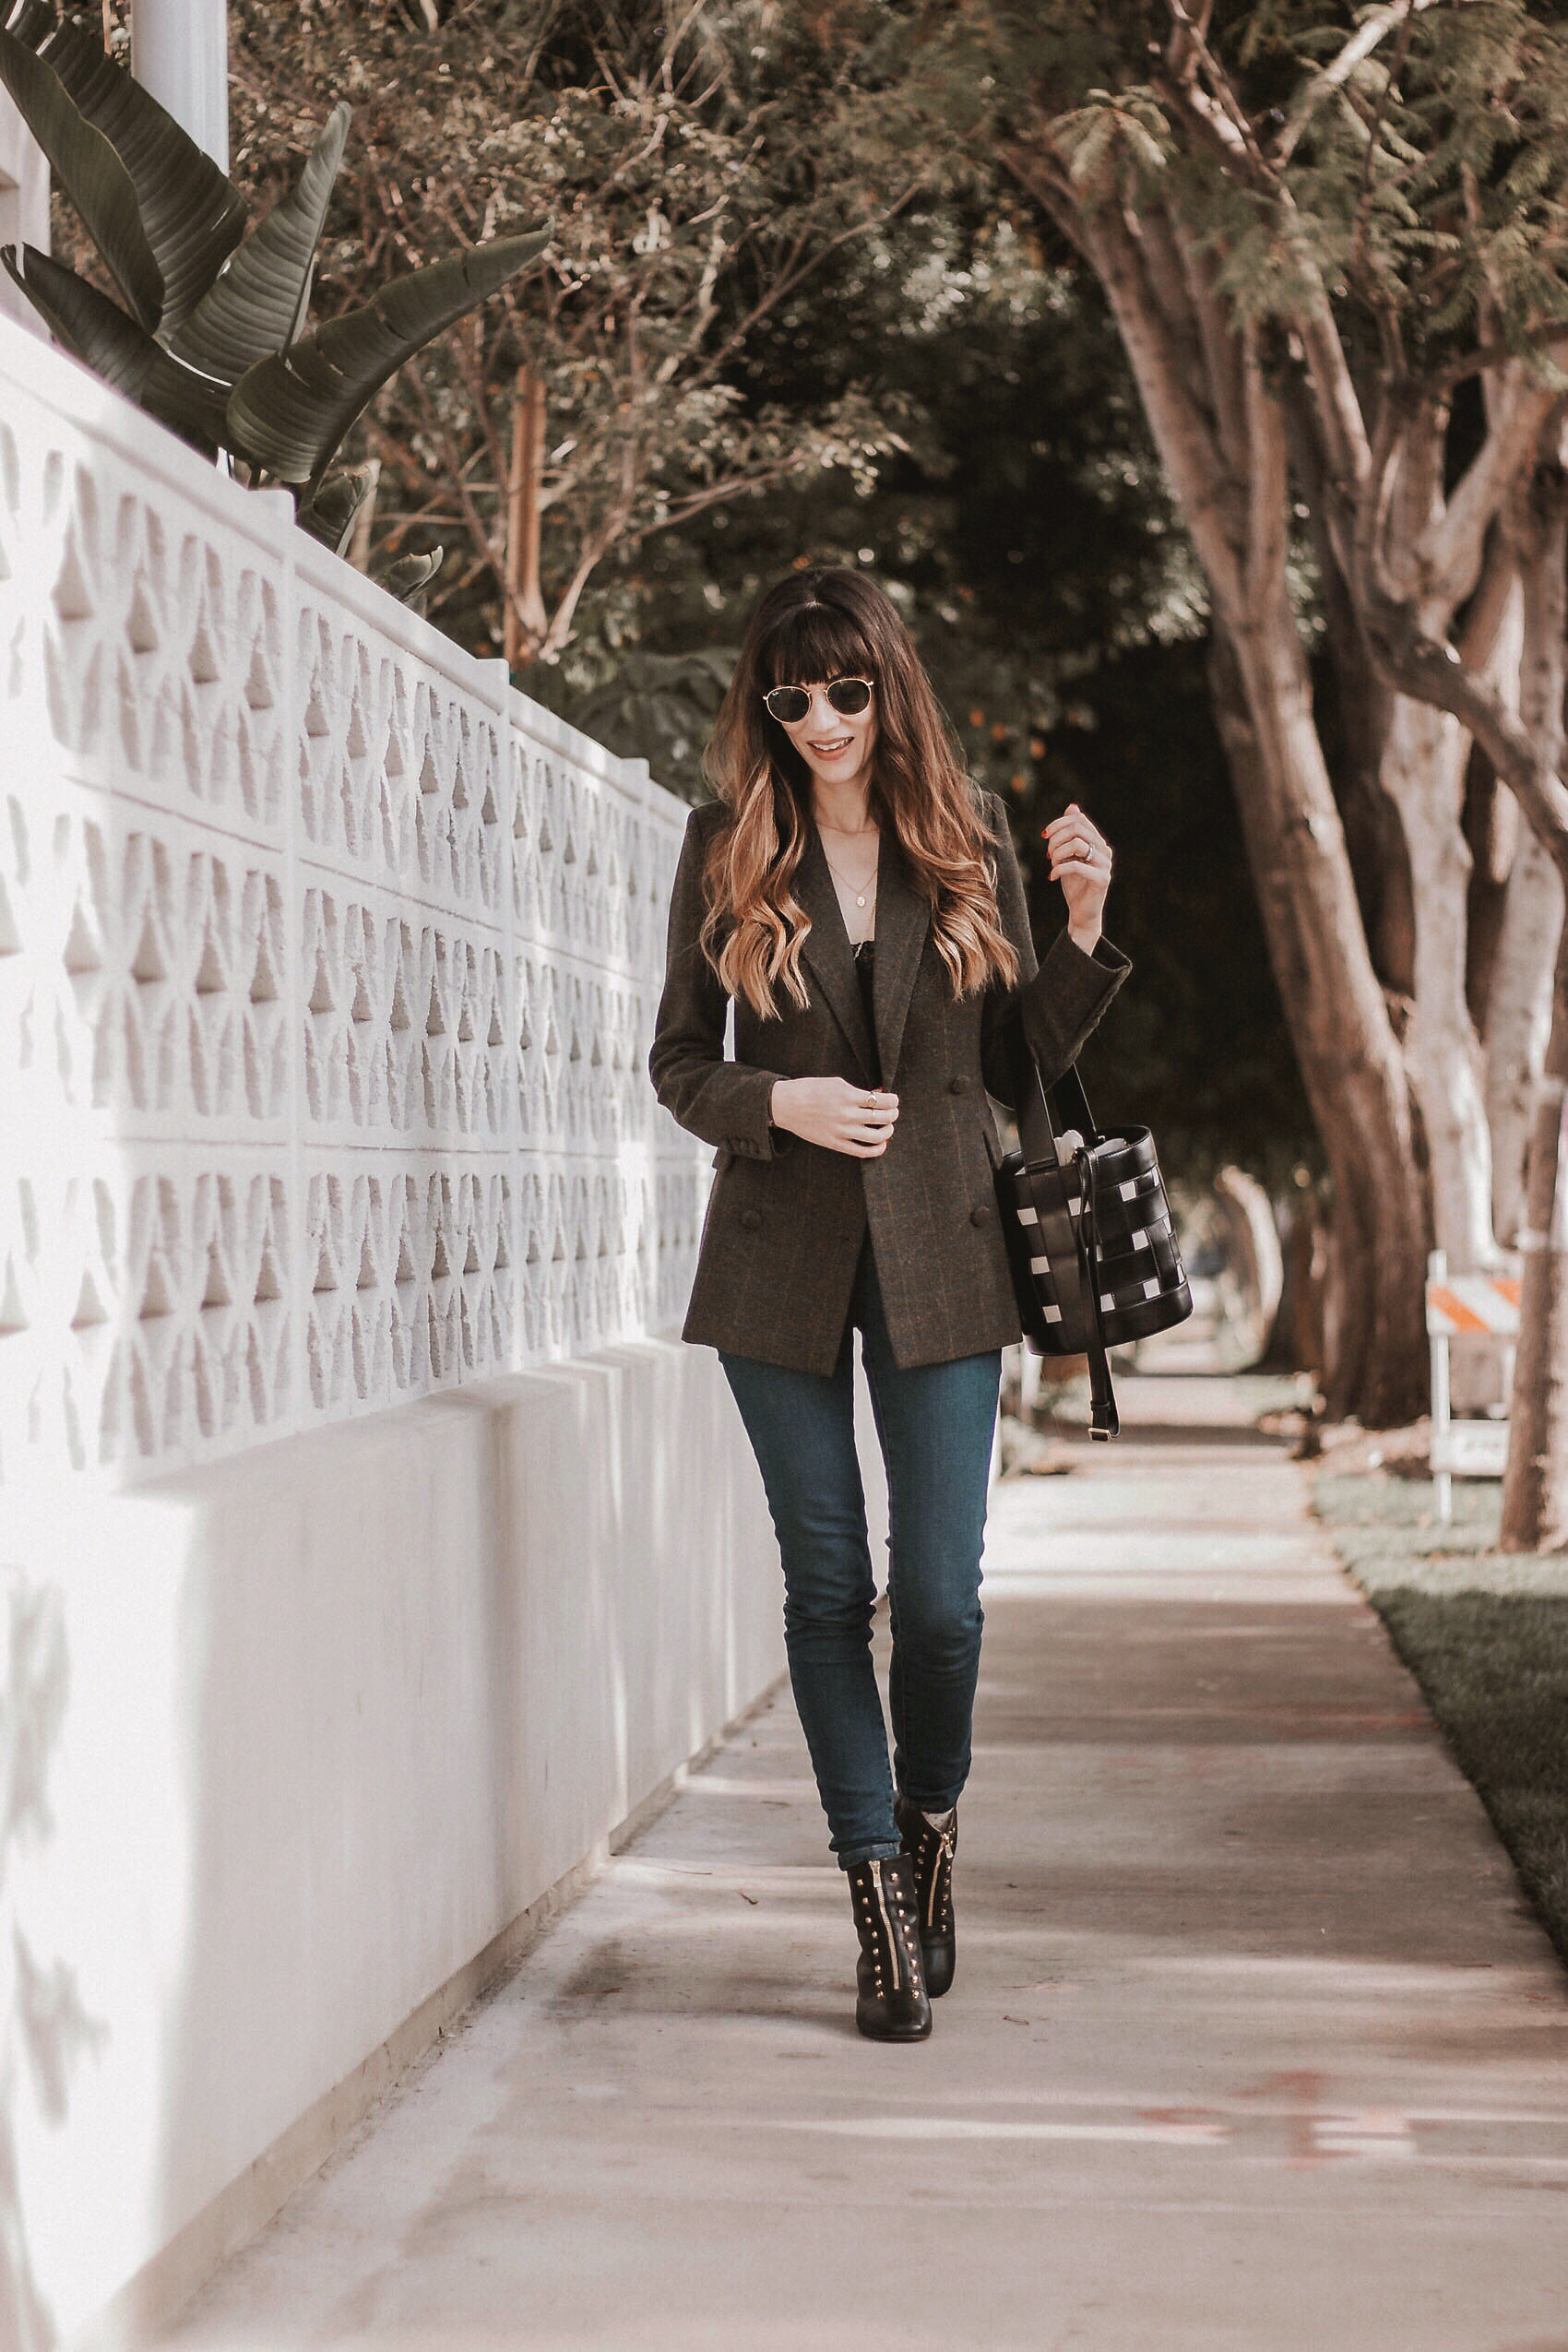 Jeans and a Teacup Fashion Blogger, Los Angeles Style Blogger, Frank and Oak Women Blazer, Everlane jeans, An Hour and a Shower Boots